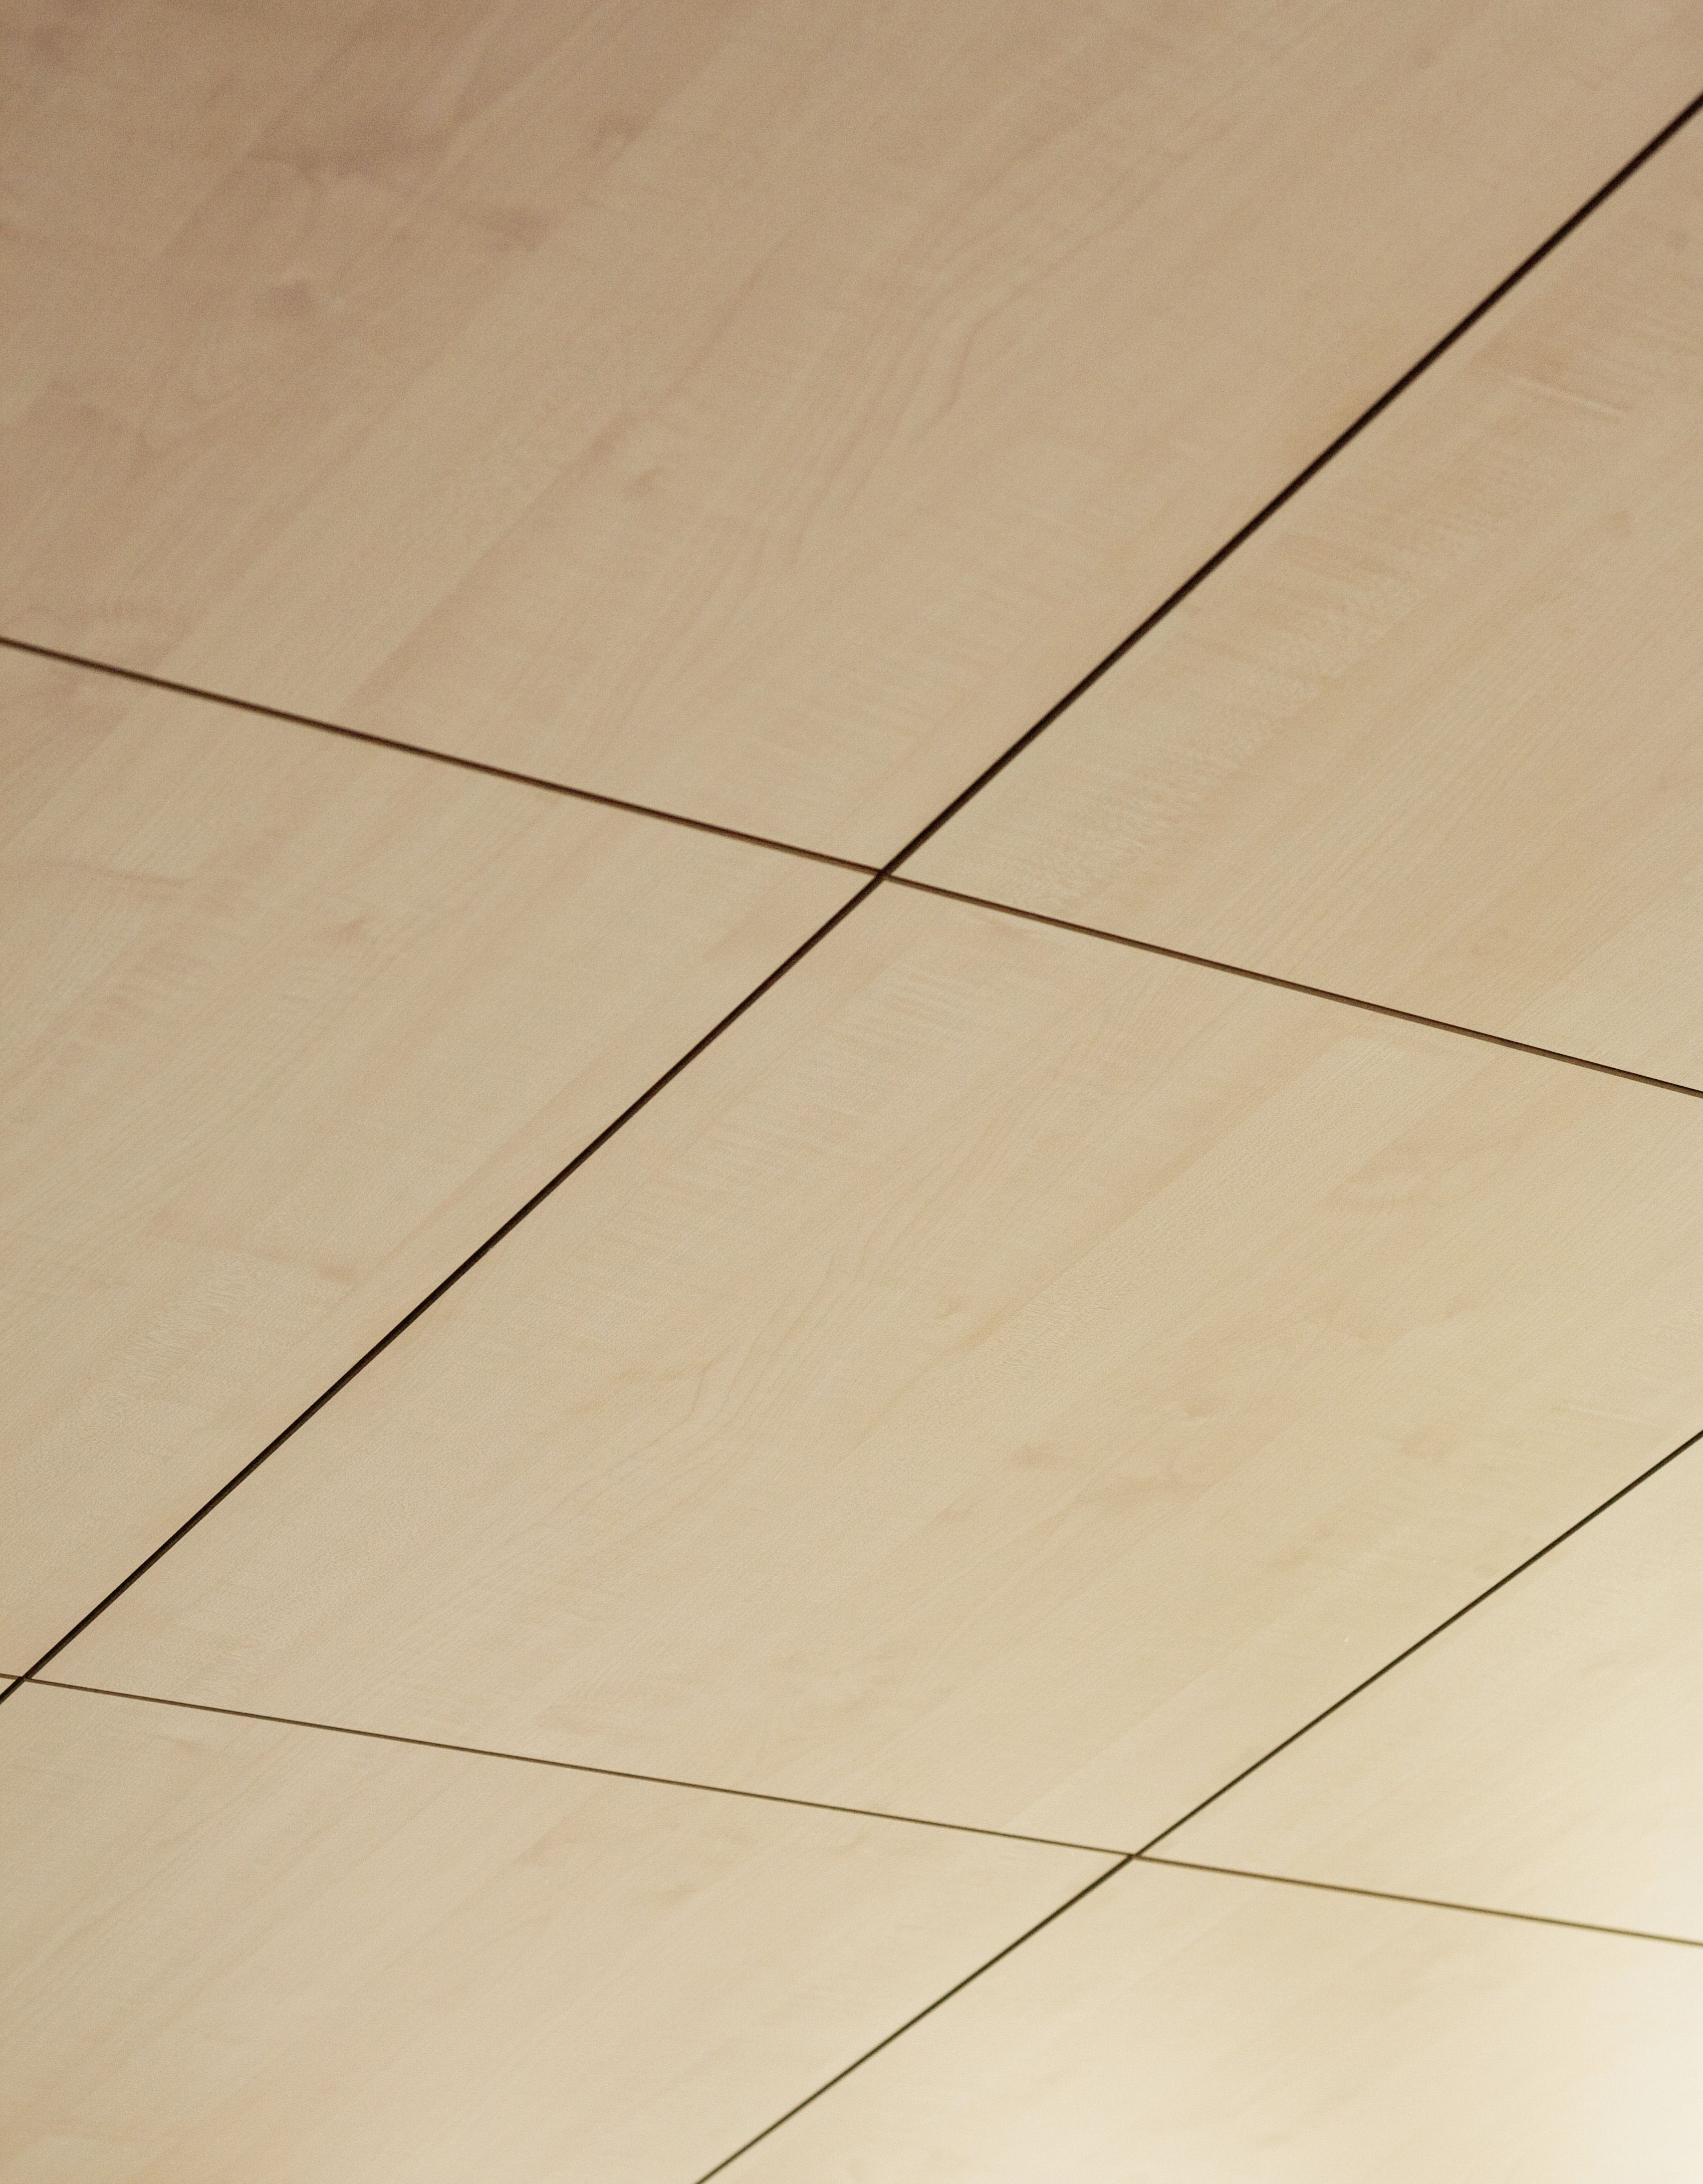 Acoustic Mdf Ceiling Tiles 60x60 System By Patt Gruppo Fantoni Acoustic Ceiling Panels Ceiling Panels Plywood Ceiling